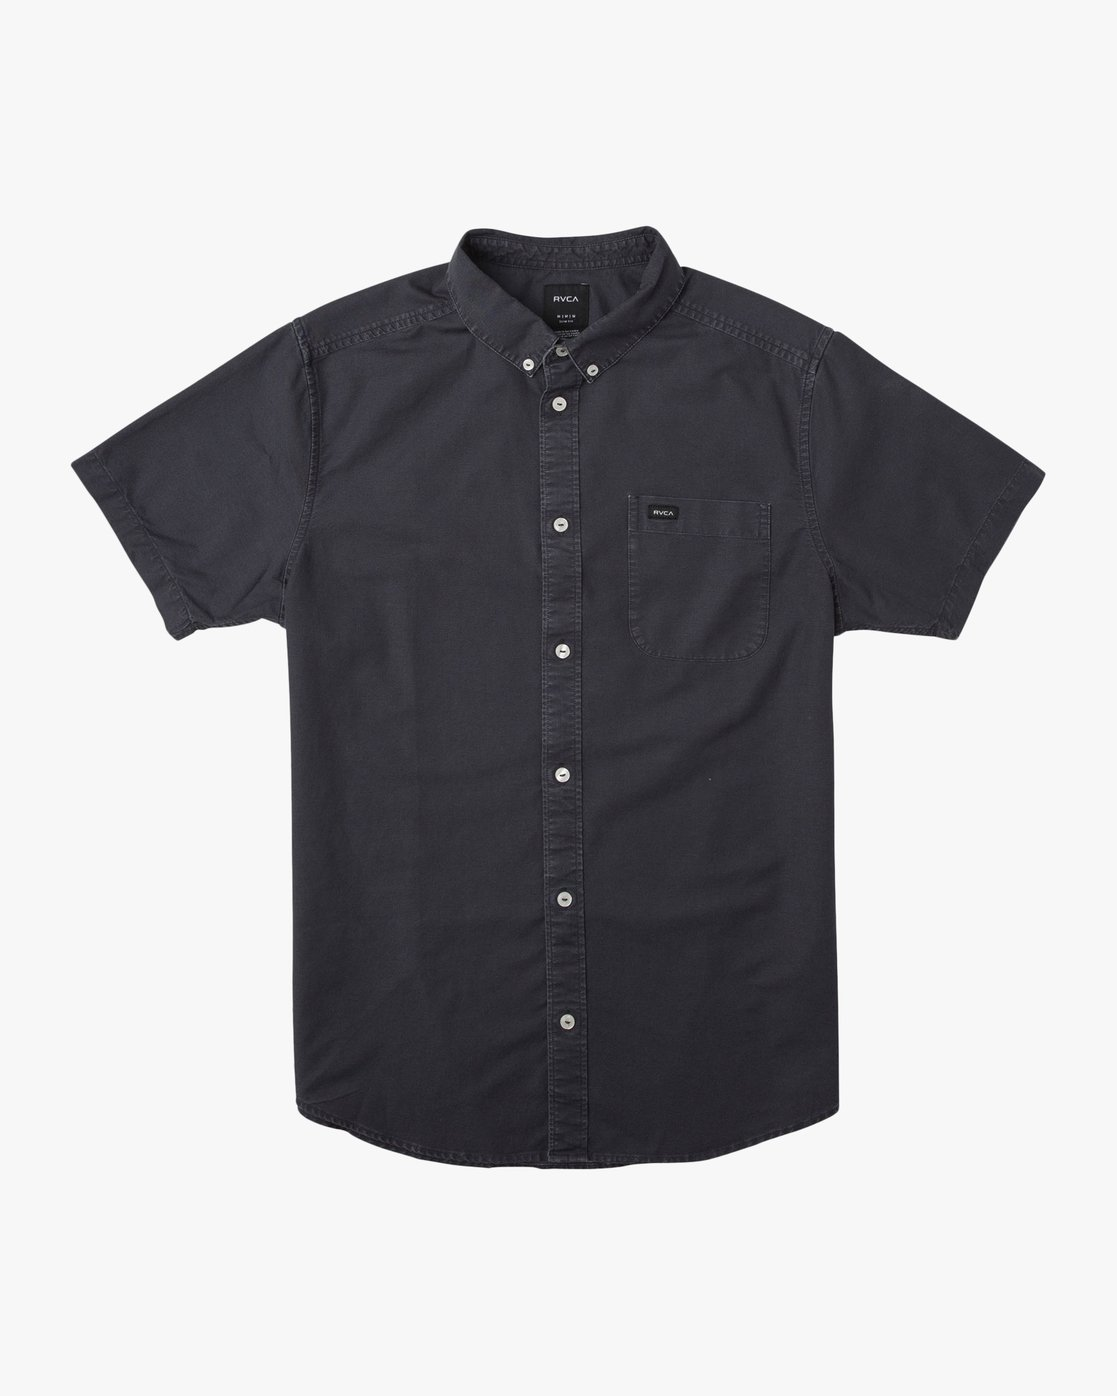 0 That'll Butter Button-Up Shirt Black M509TRTB RVCA